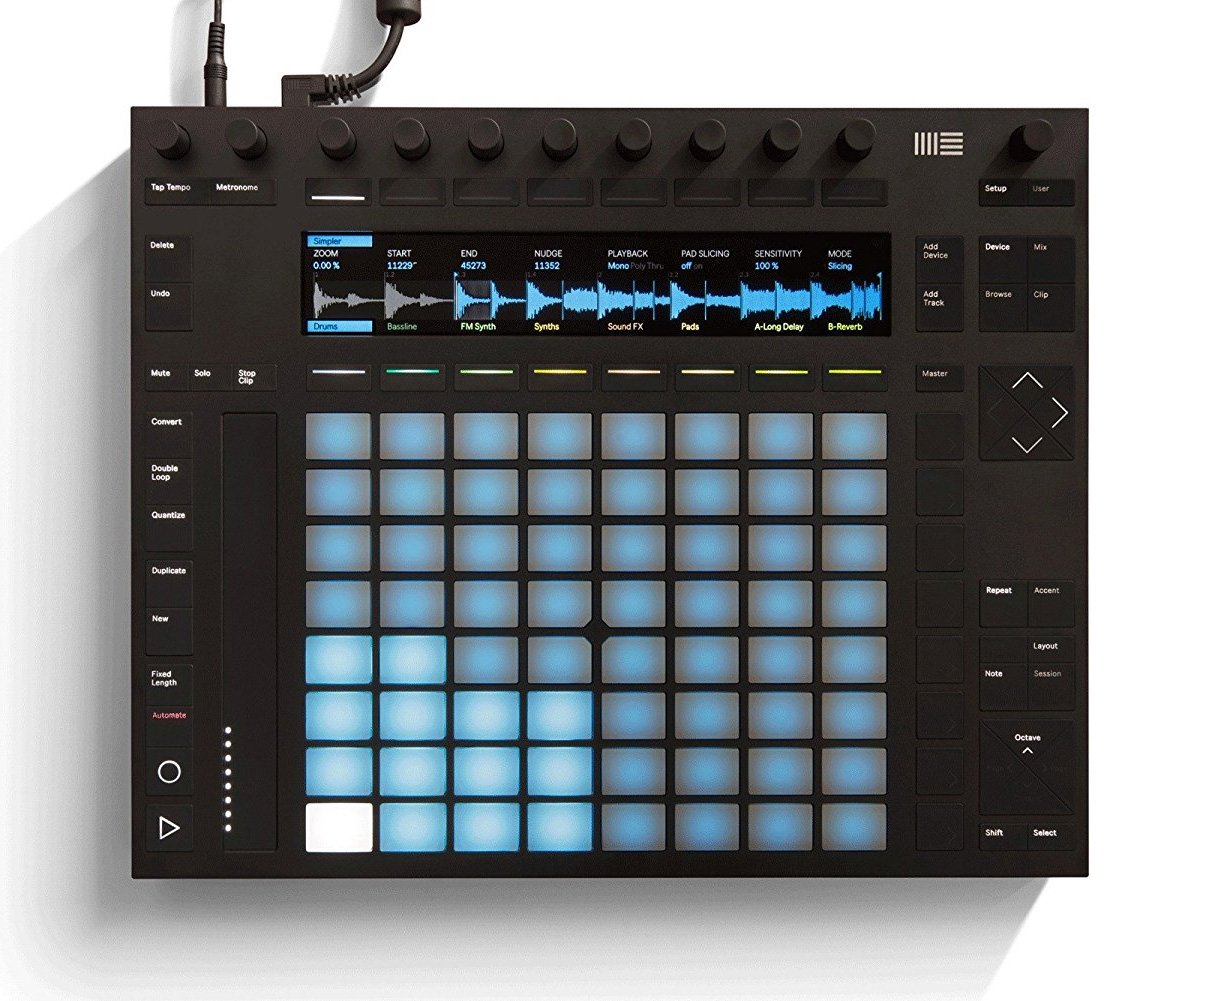 Ableton Push 2 with Live 10 Suite (Software Included) by Ableton